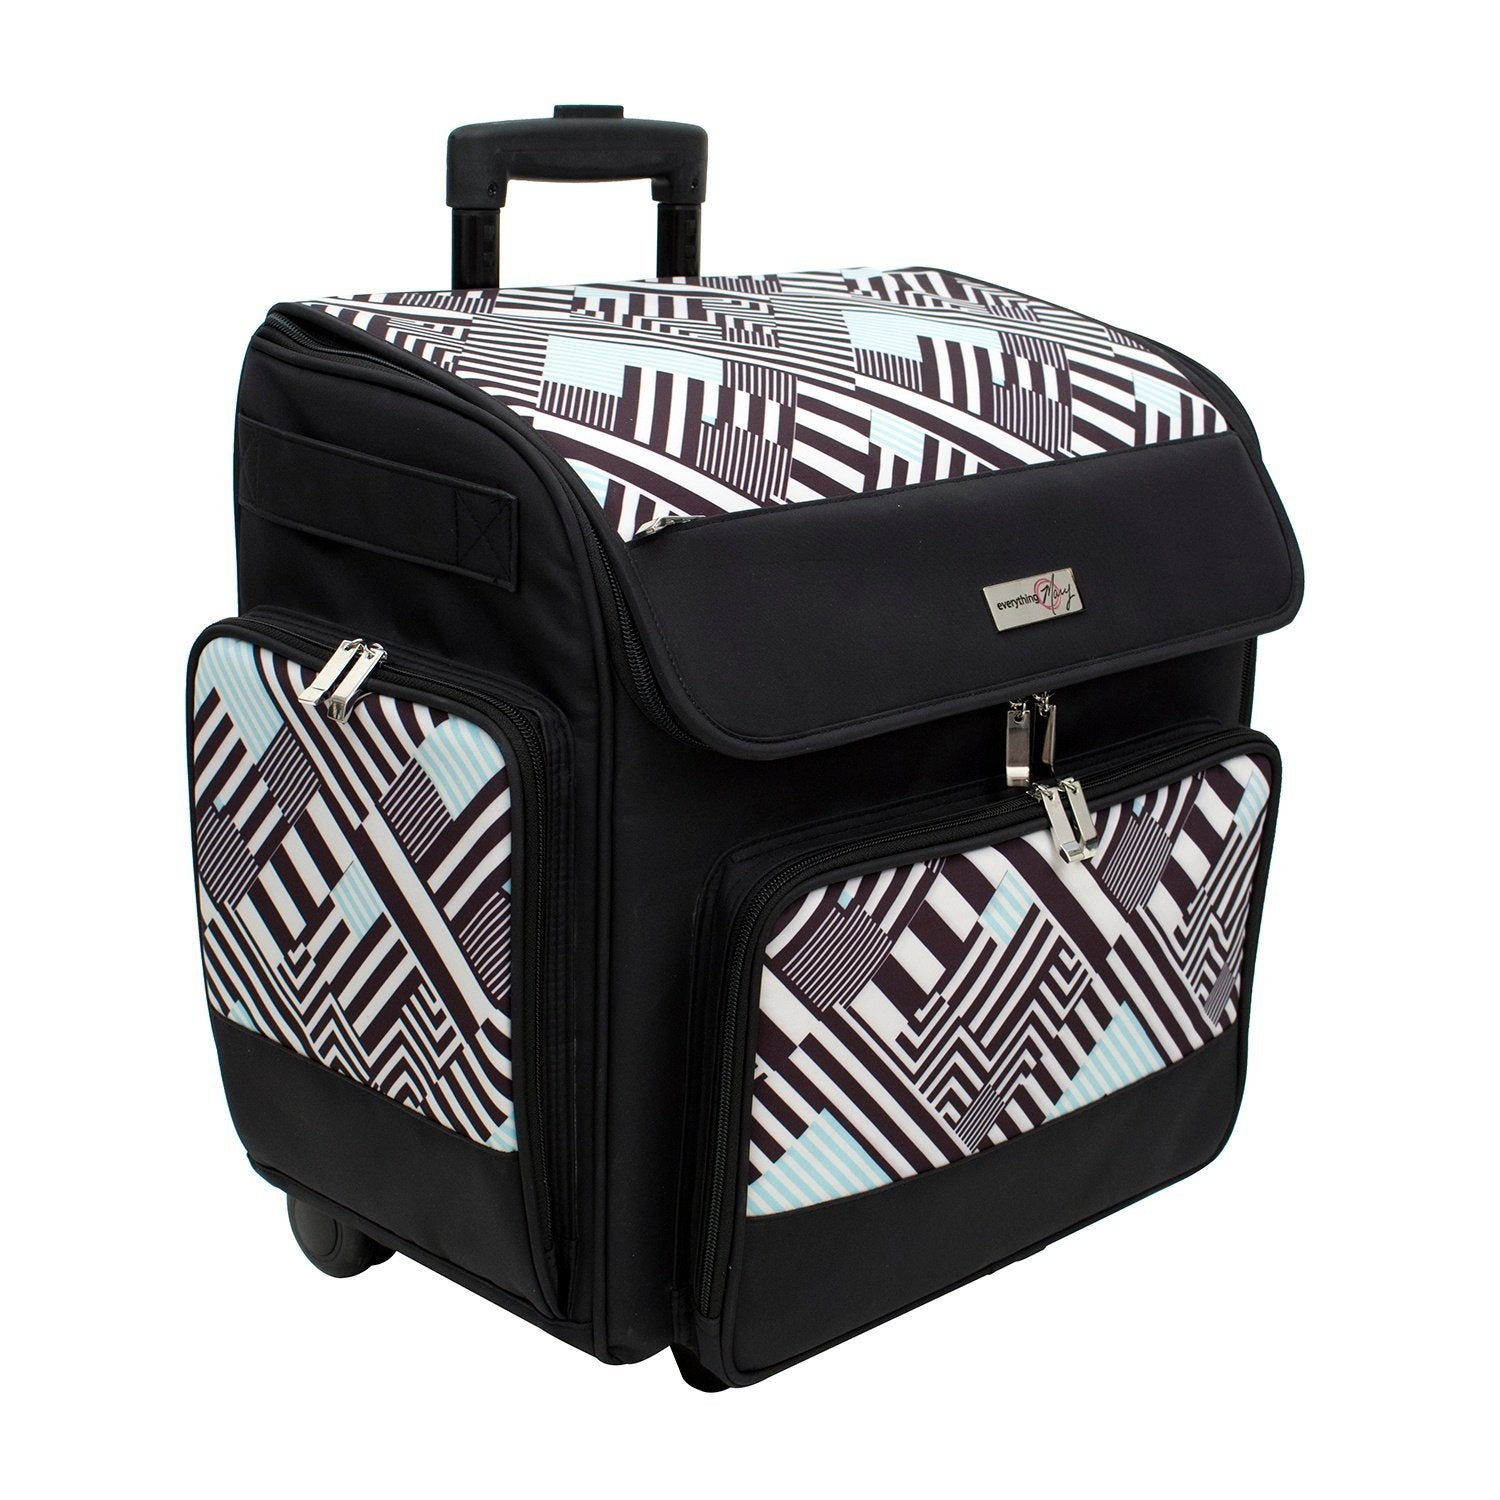 Deluxe Scrapbook Rolling Travel Case - Everything Mary a63bf22db1